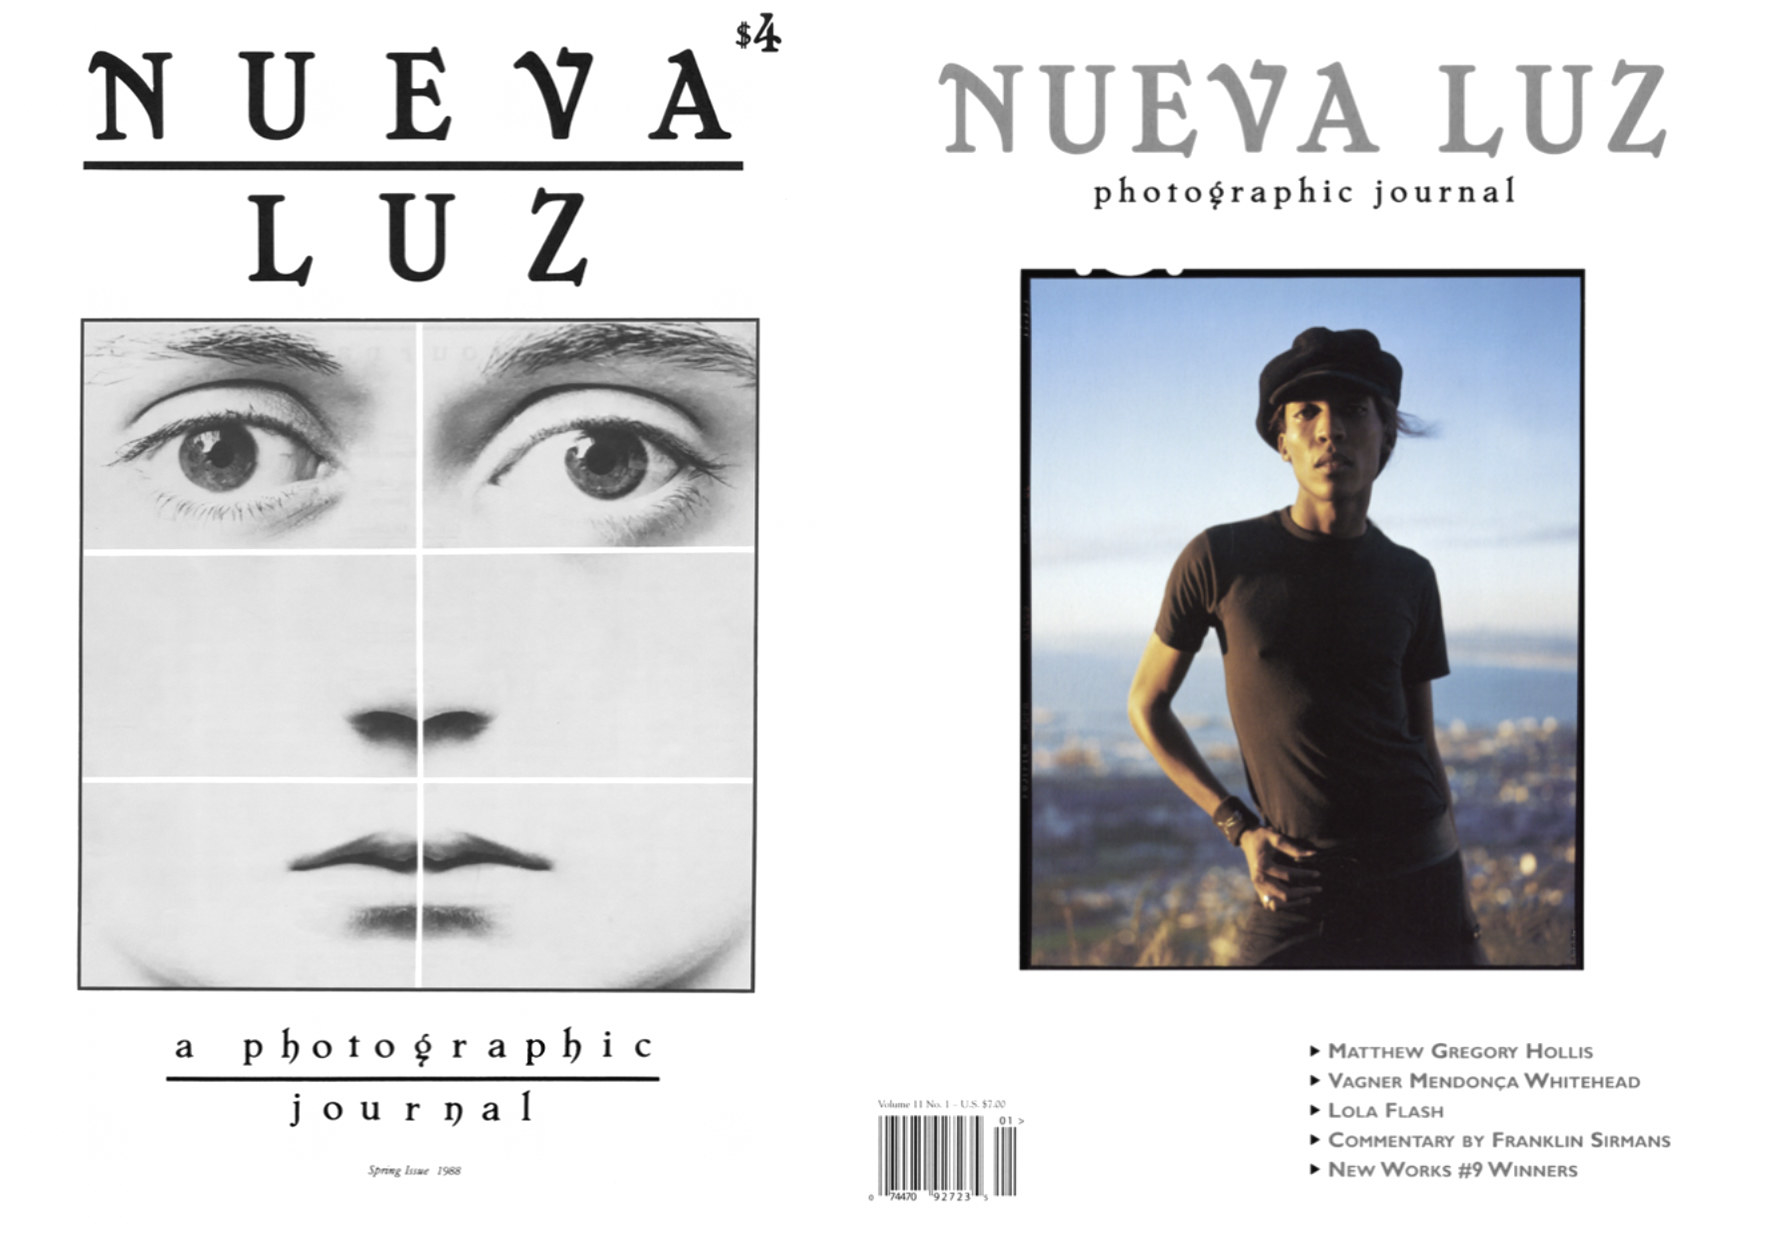 Two magazine covers of Nueva Luz, the left with a collage of six photographs, the right with a single figure with a view behind him